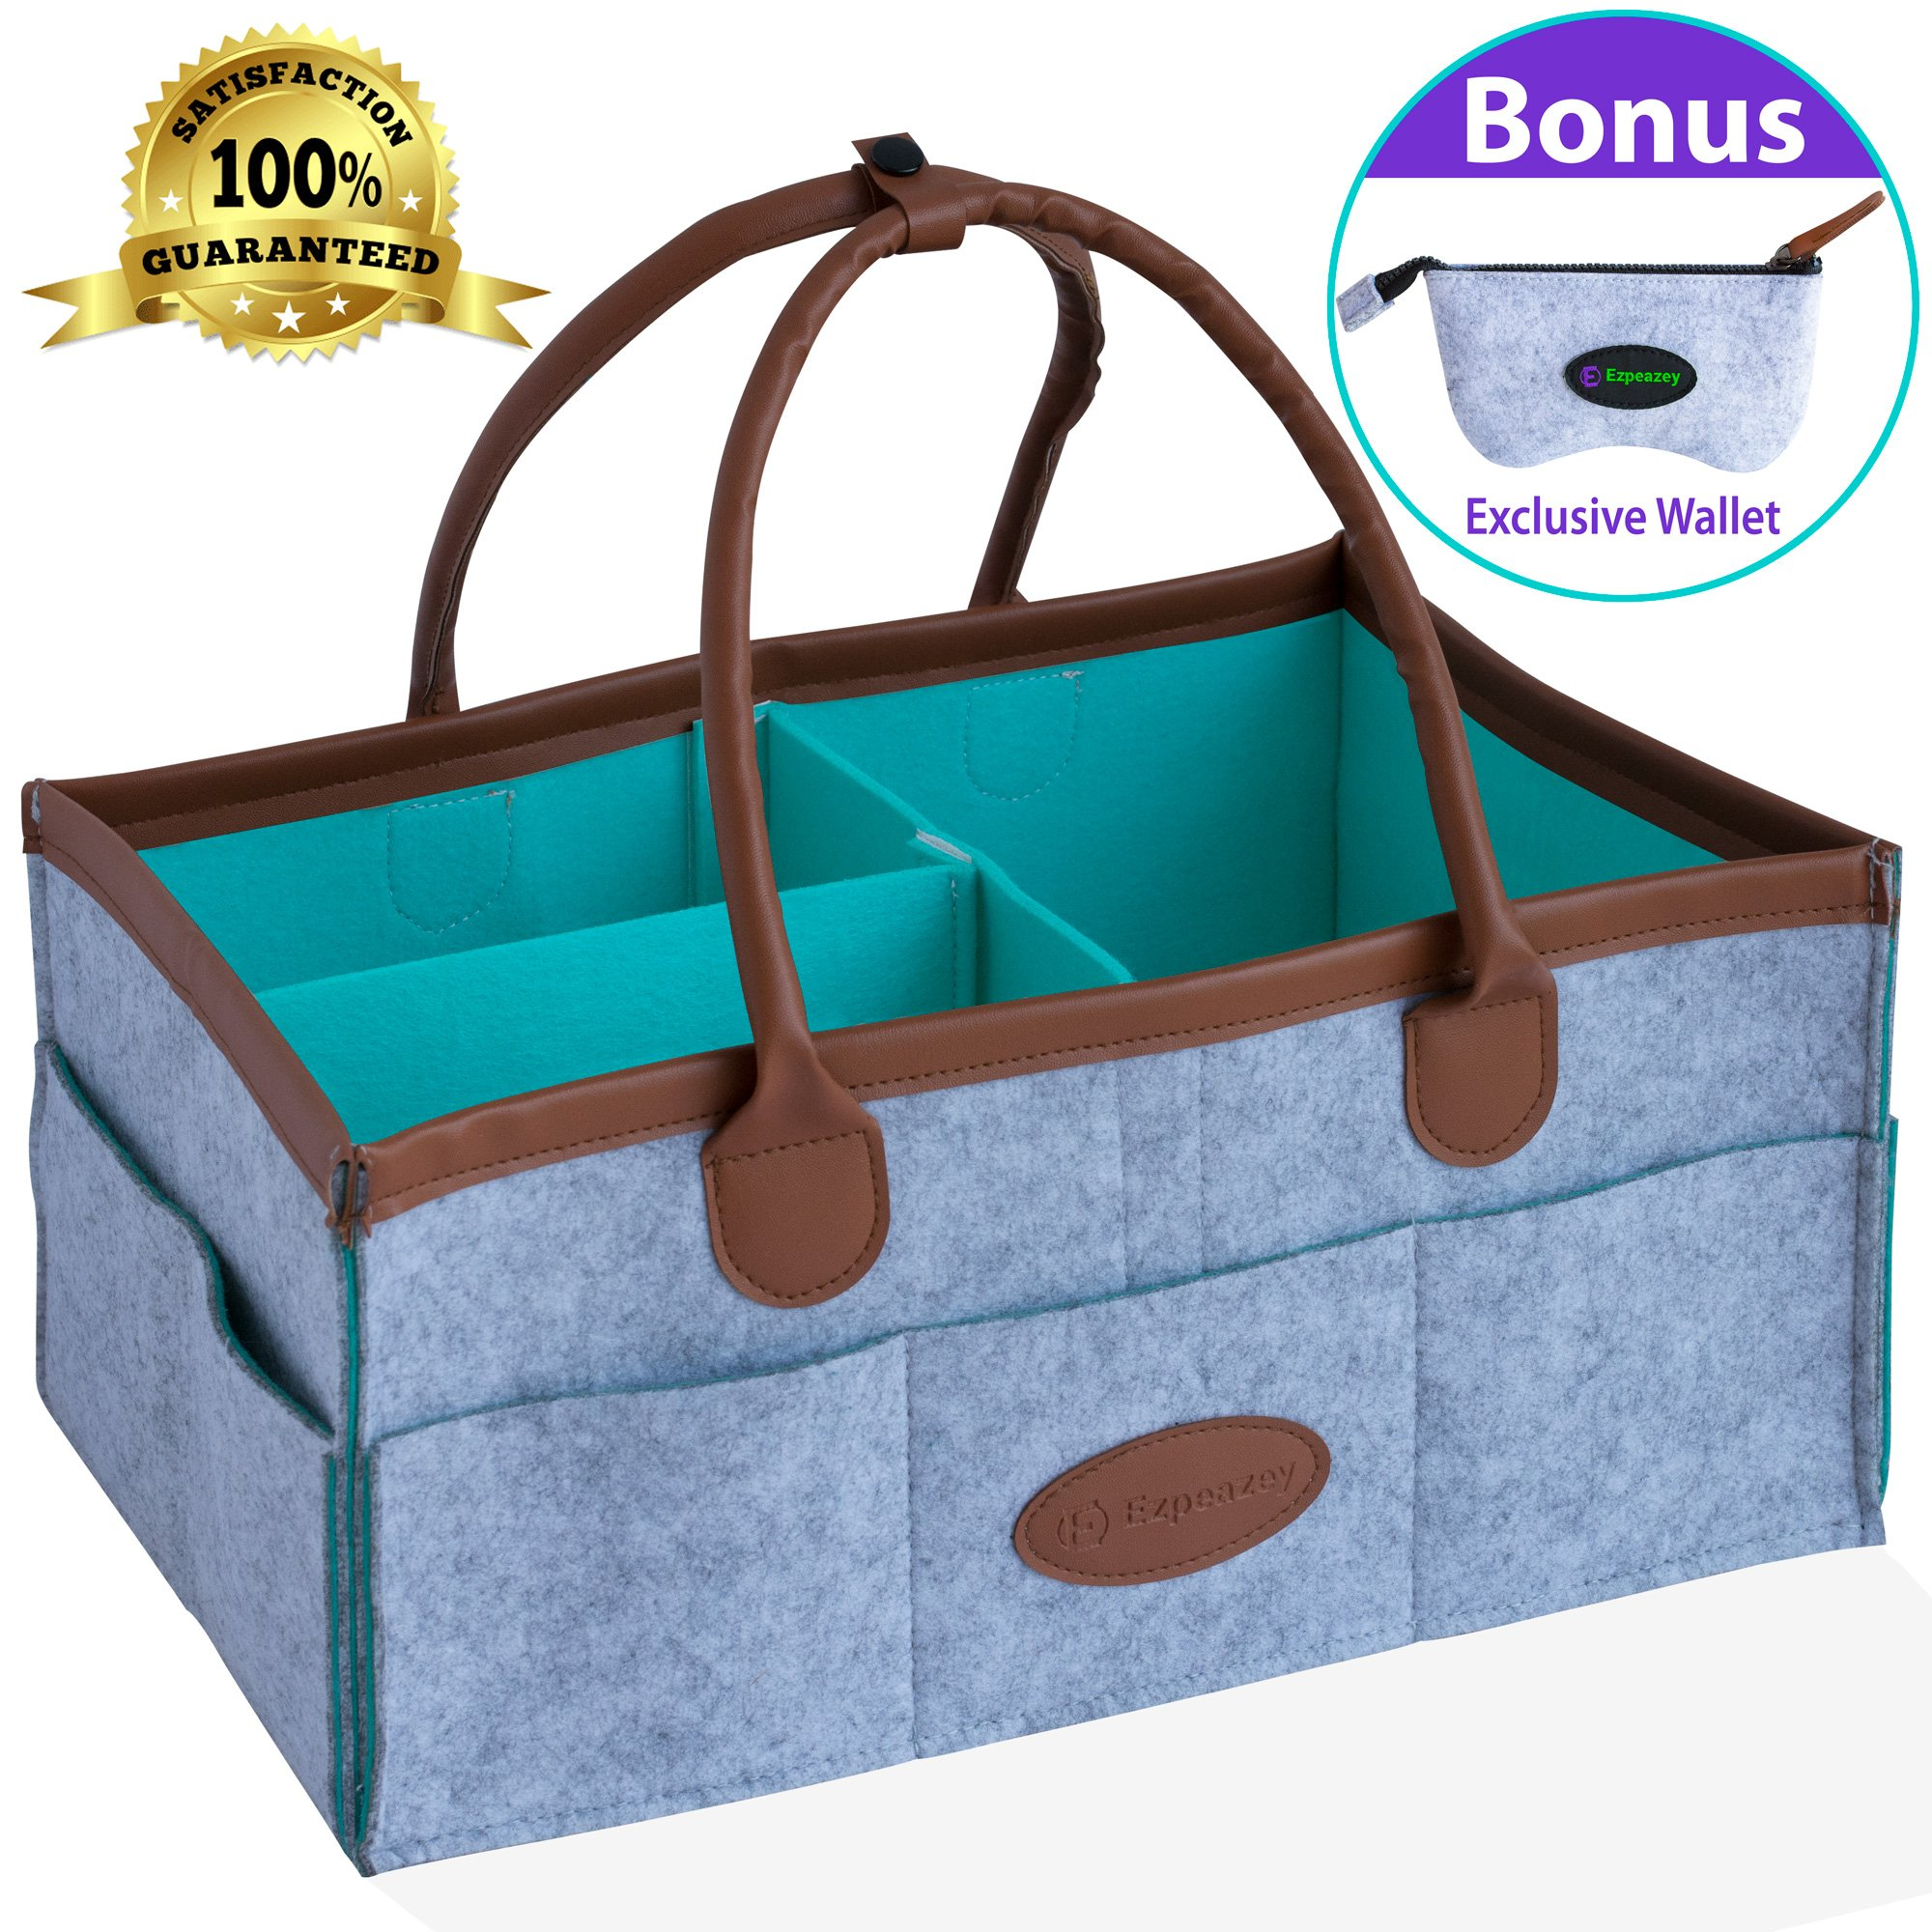 Ezpeazey Diaper Caddy Organizer Basket With Wallet Bag   Leather Handles, Smart Clip, Unisex Grey, Cute Rectangular & Portable Design   For Baby Shower Gifts, Bibs, Toys, Creams, Wipes, Cloths & More